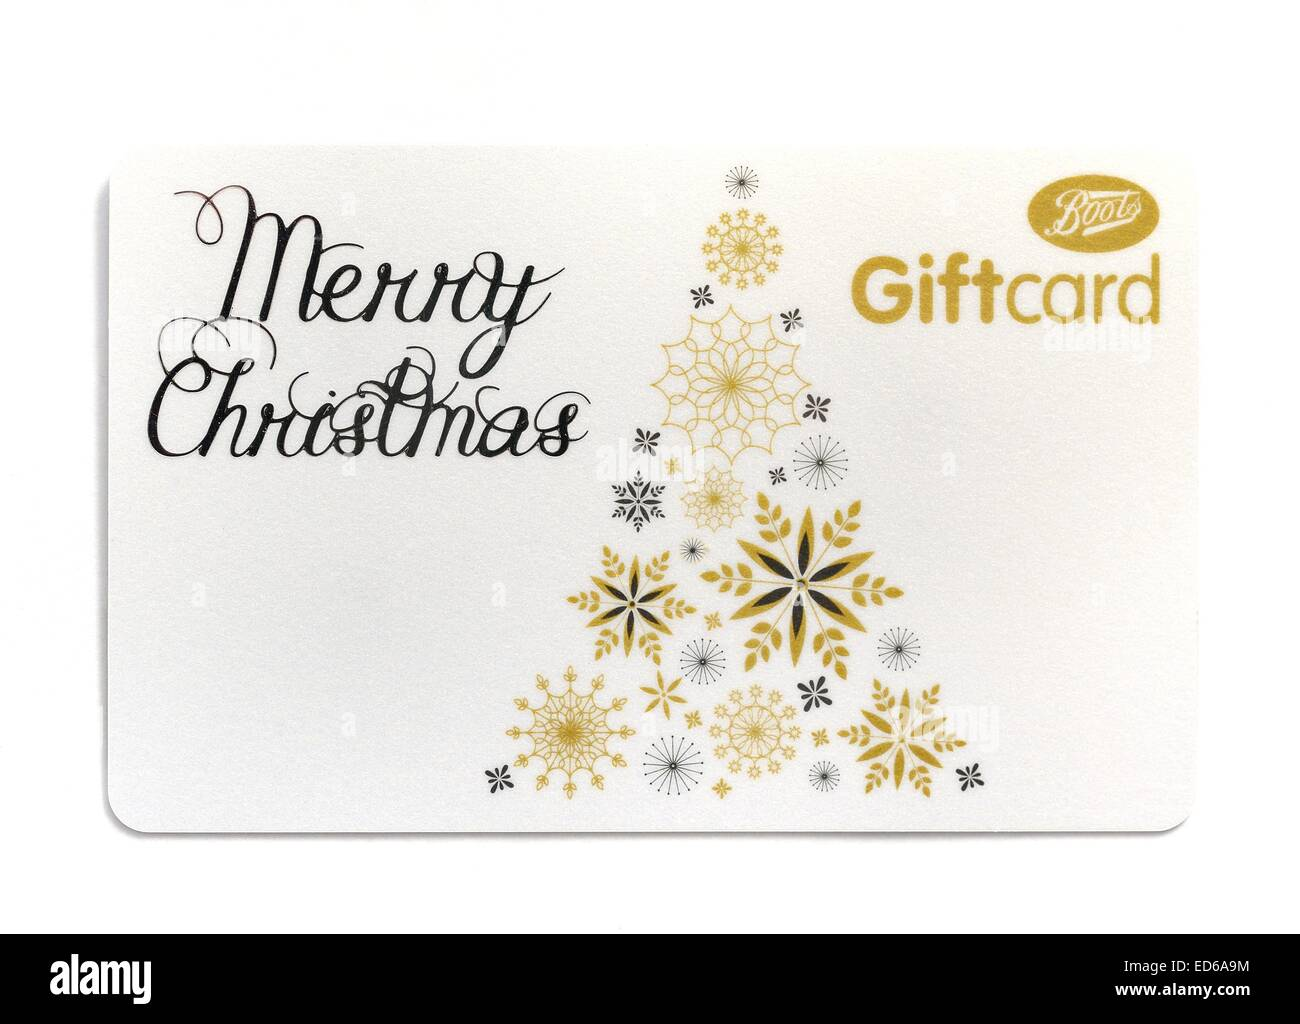 Merry christmas boots gift card stock photo 76971824 alamy merry christmas boots gift card negle Images